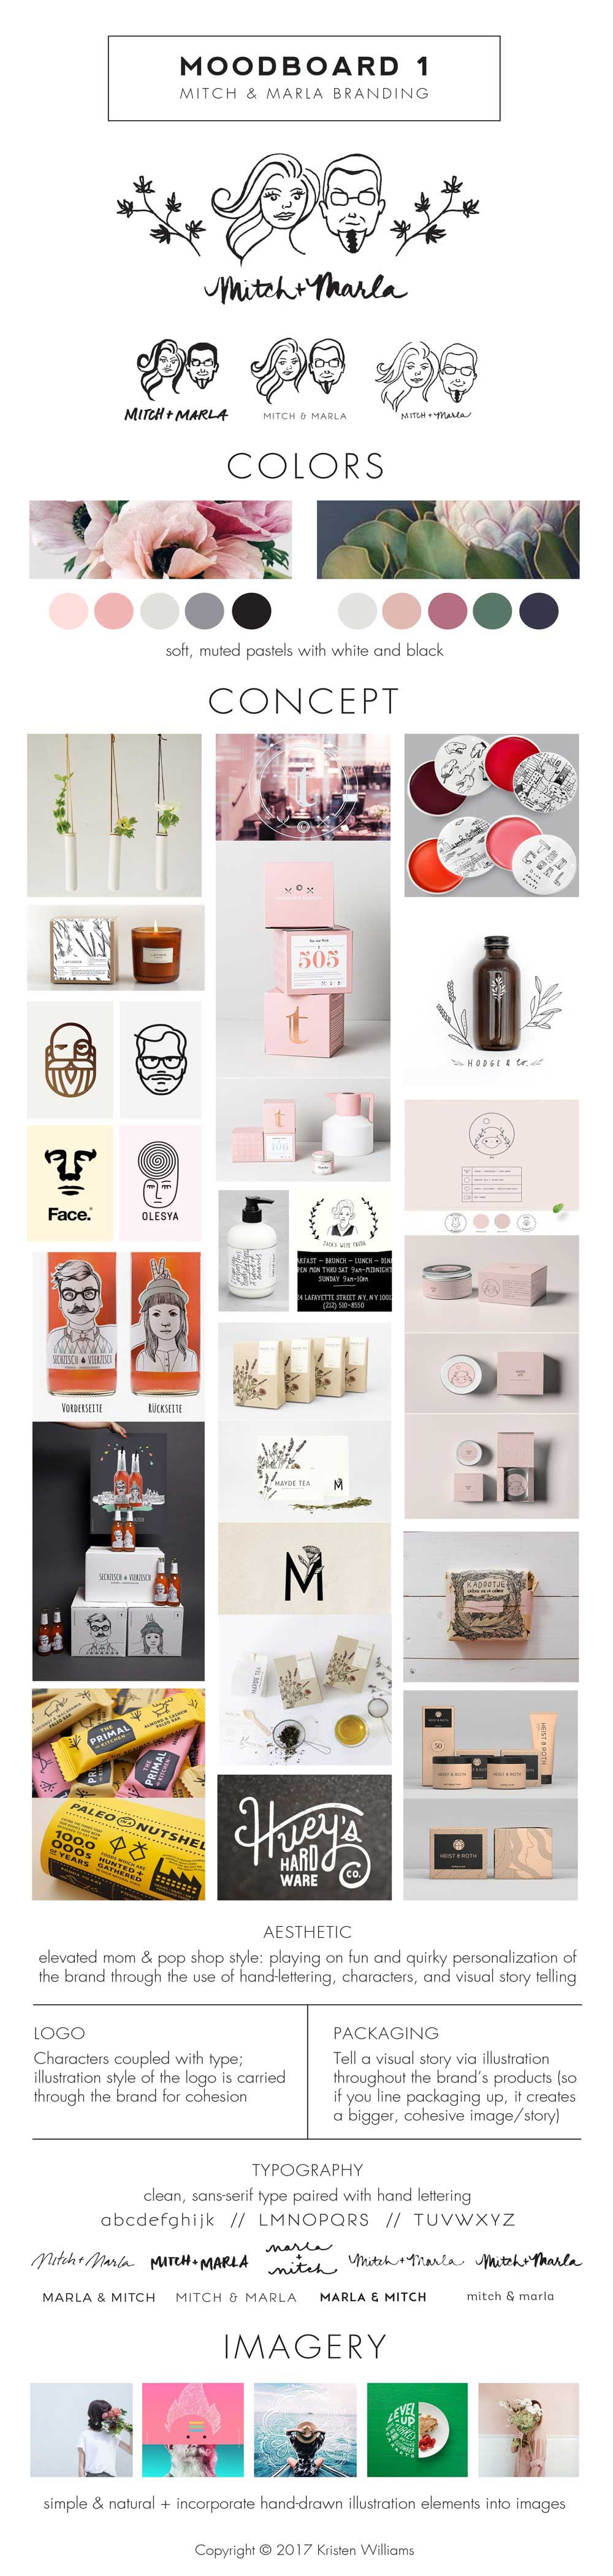 cannabis-branding-kristen-williams-designs